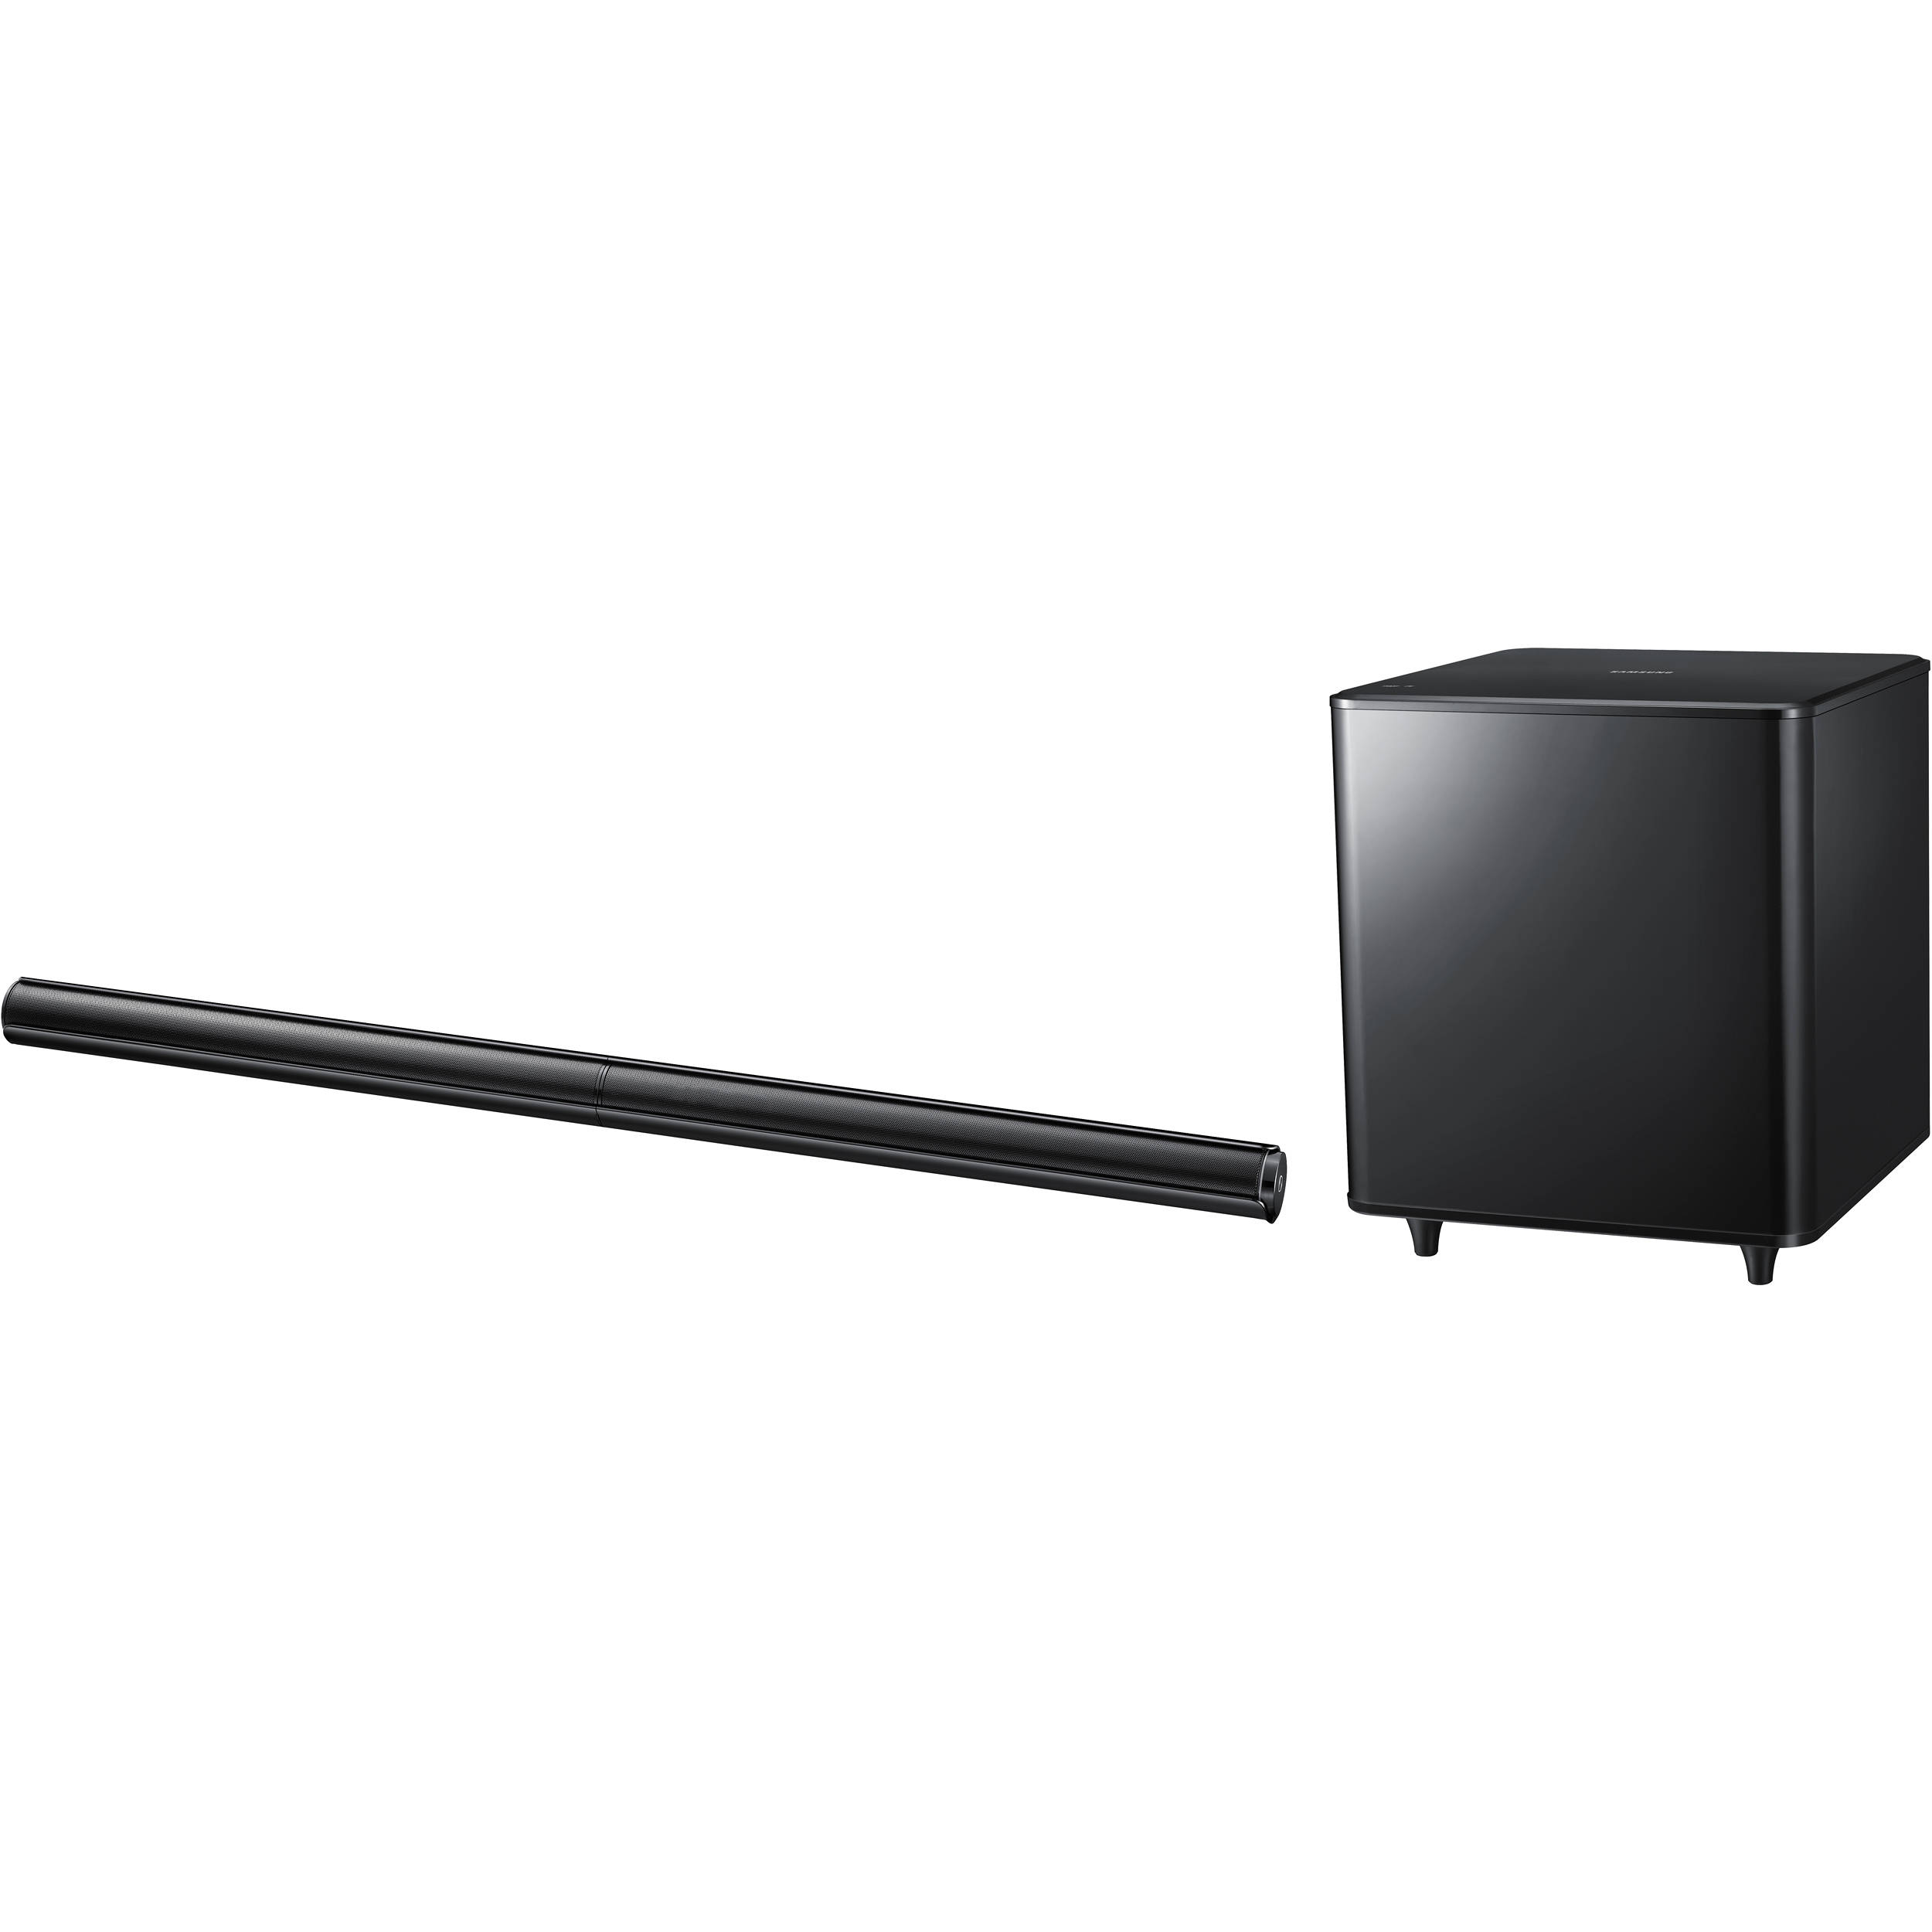 samsung hw e550 soundbar home theater speaker system hw. Black Bedroom Furniture Sets. Home Design Ideas